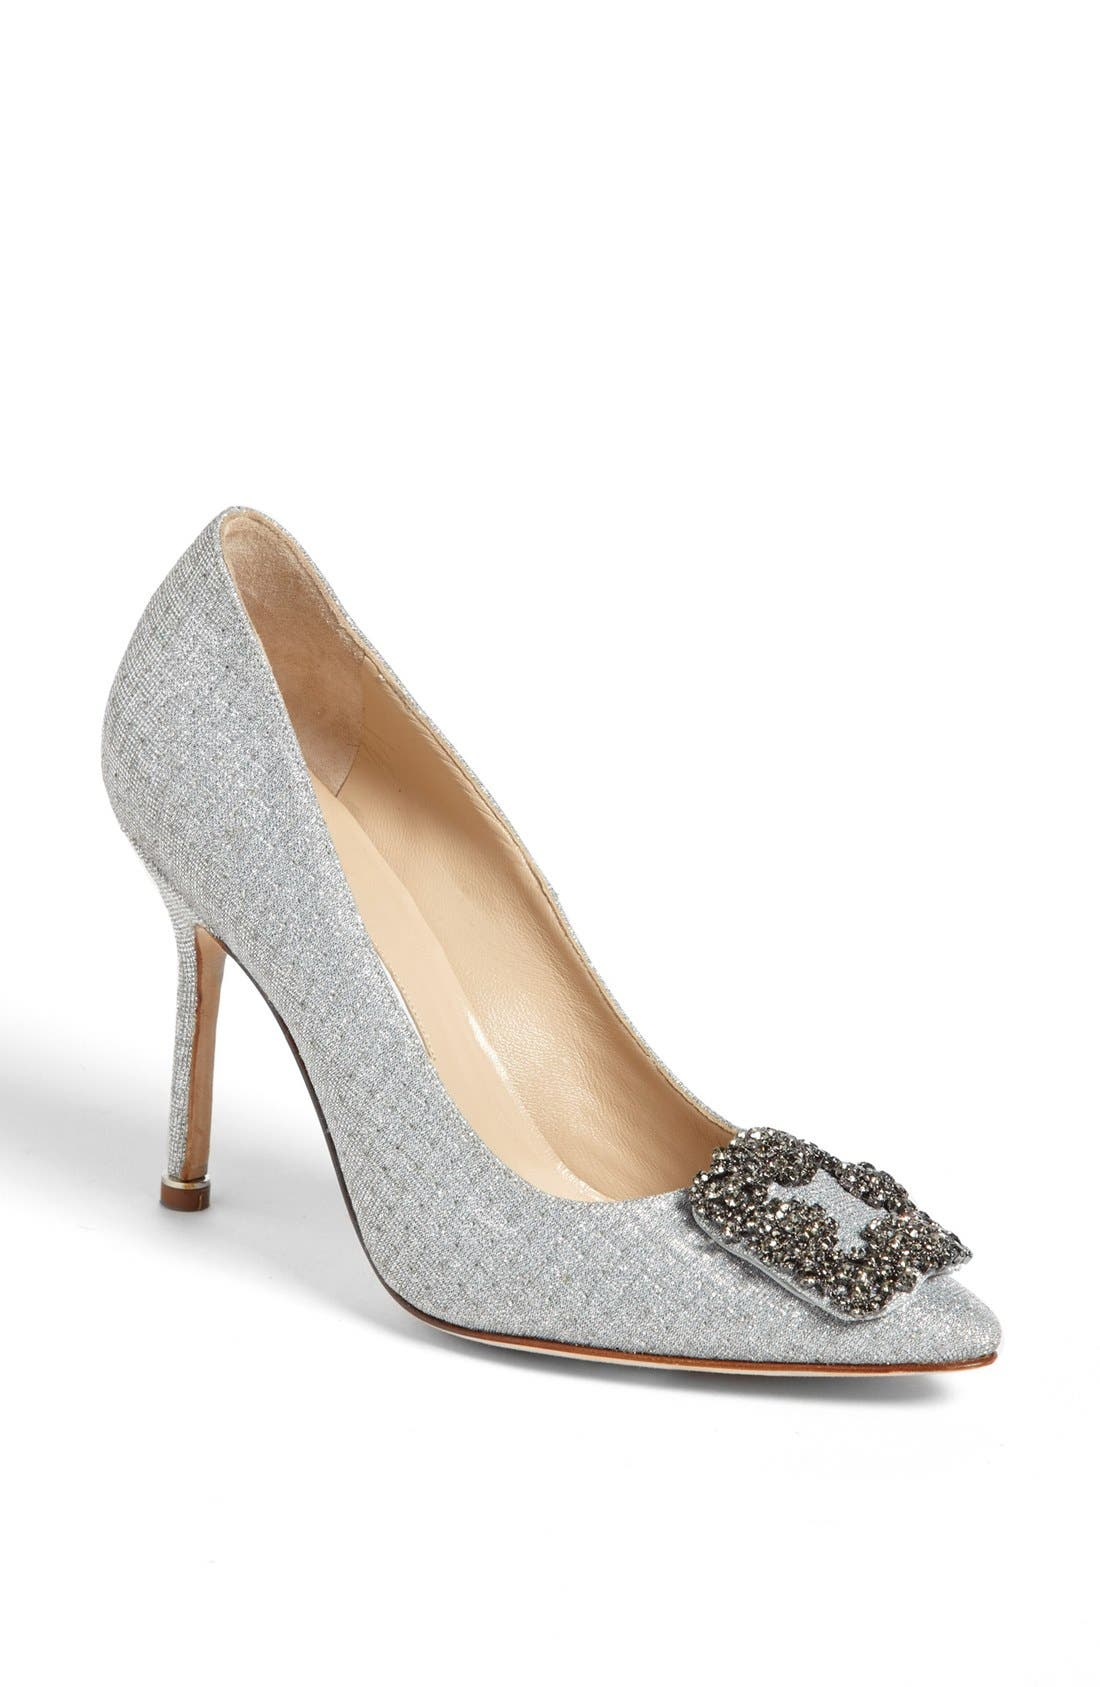 'Hangisi' Jeweled Pump,                         Main,                         color, SILVER